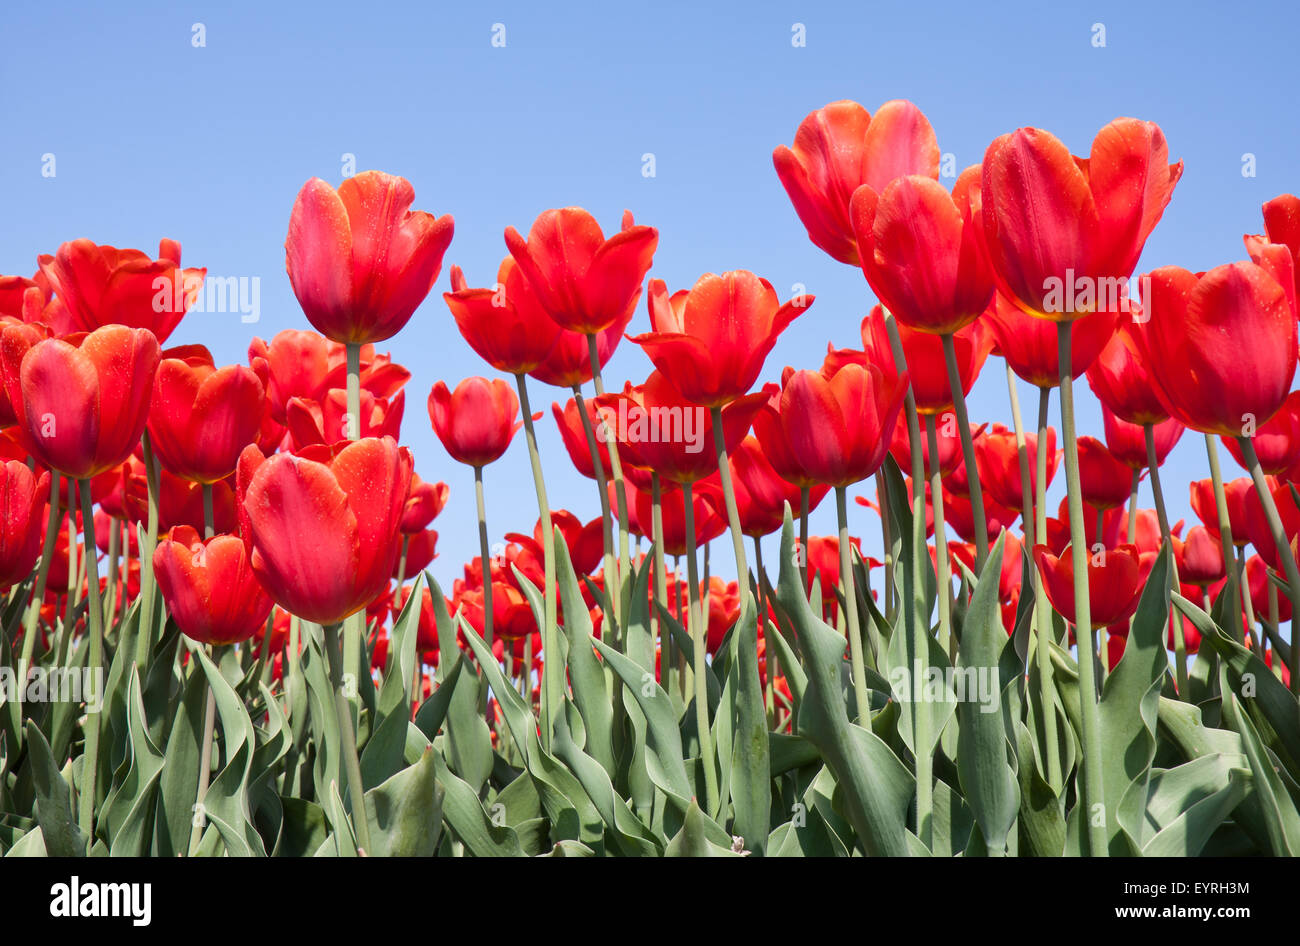 Greeting card from holland stock photos greeting card from holland red tulips from the netherlands stock image m4hsunfo